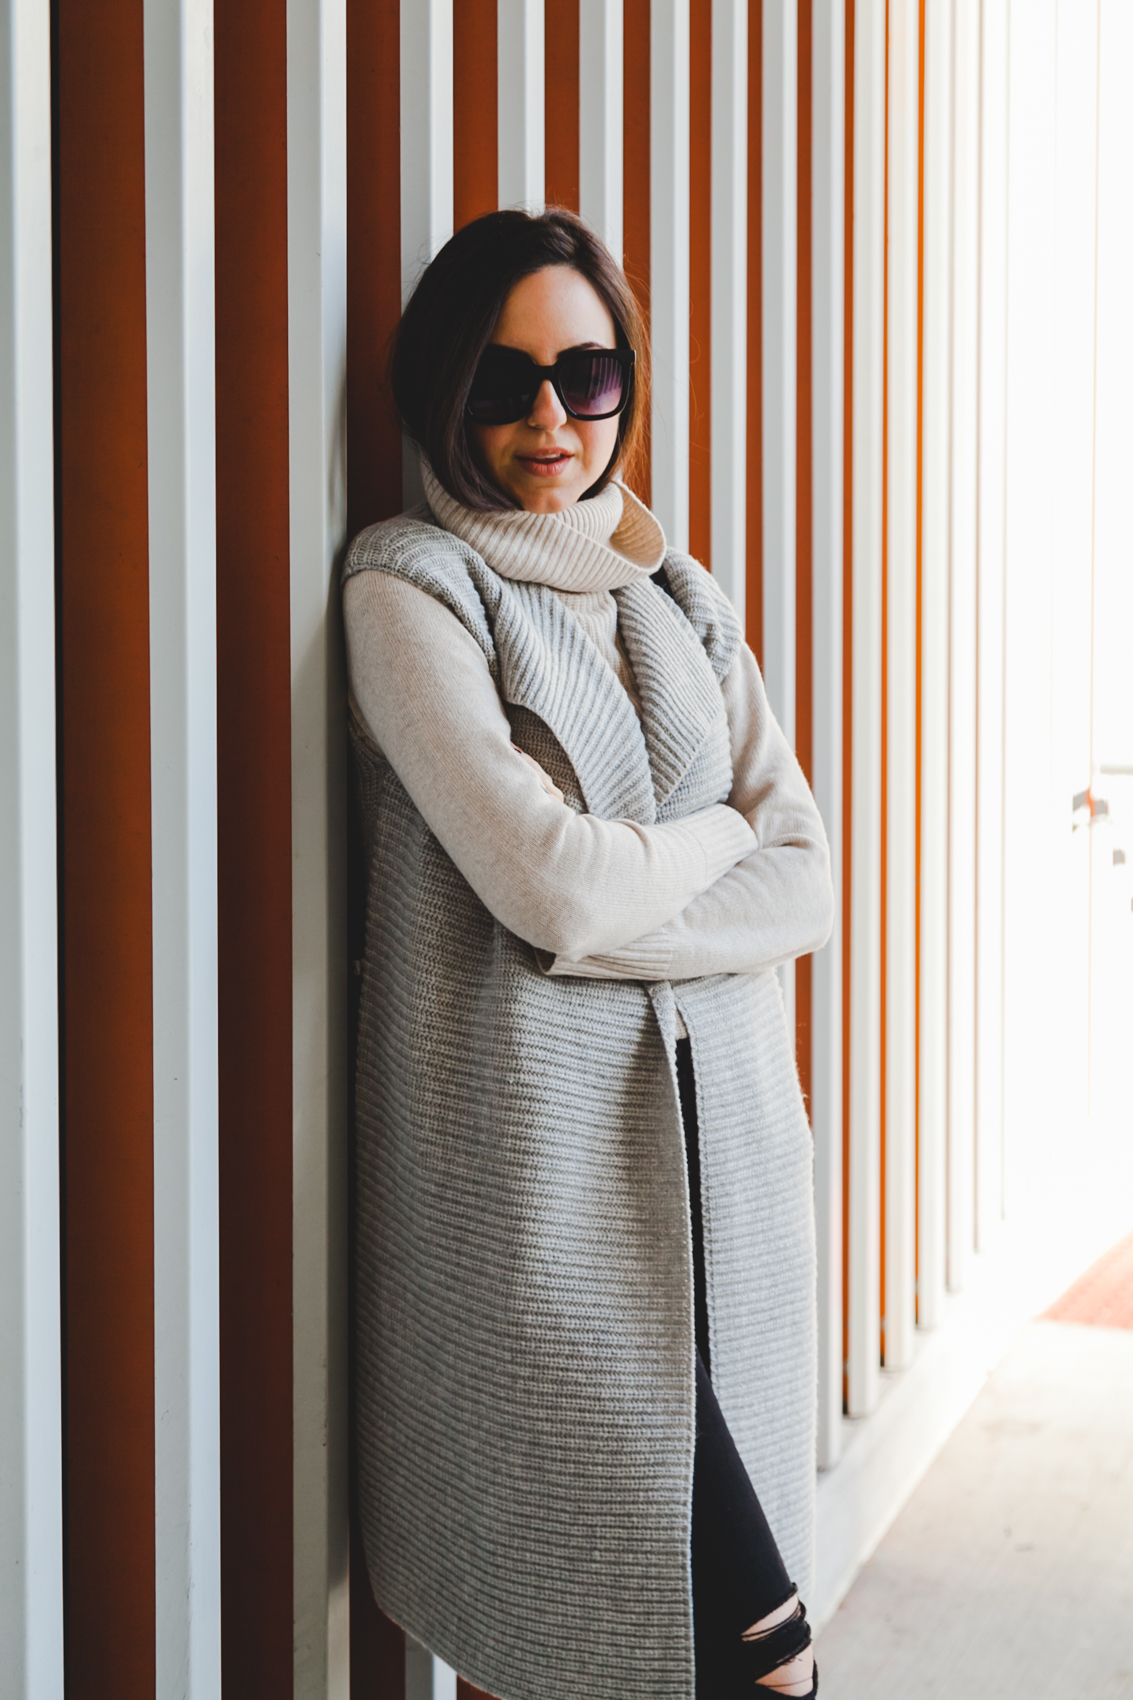 Yana Frigelis of NoMad Luxuries wearing a layered look from Banana Republic, Asos and Zara in Neutrals